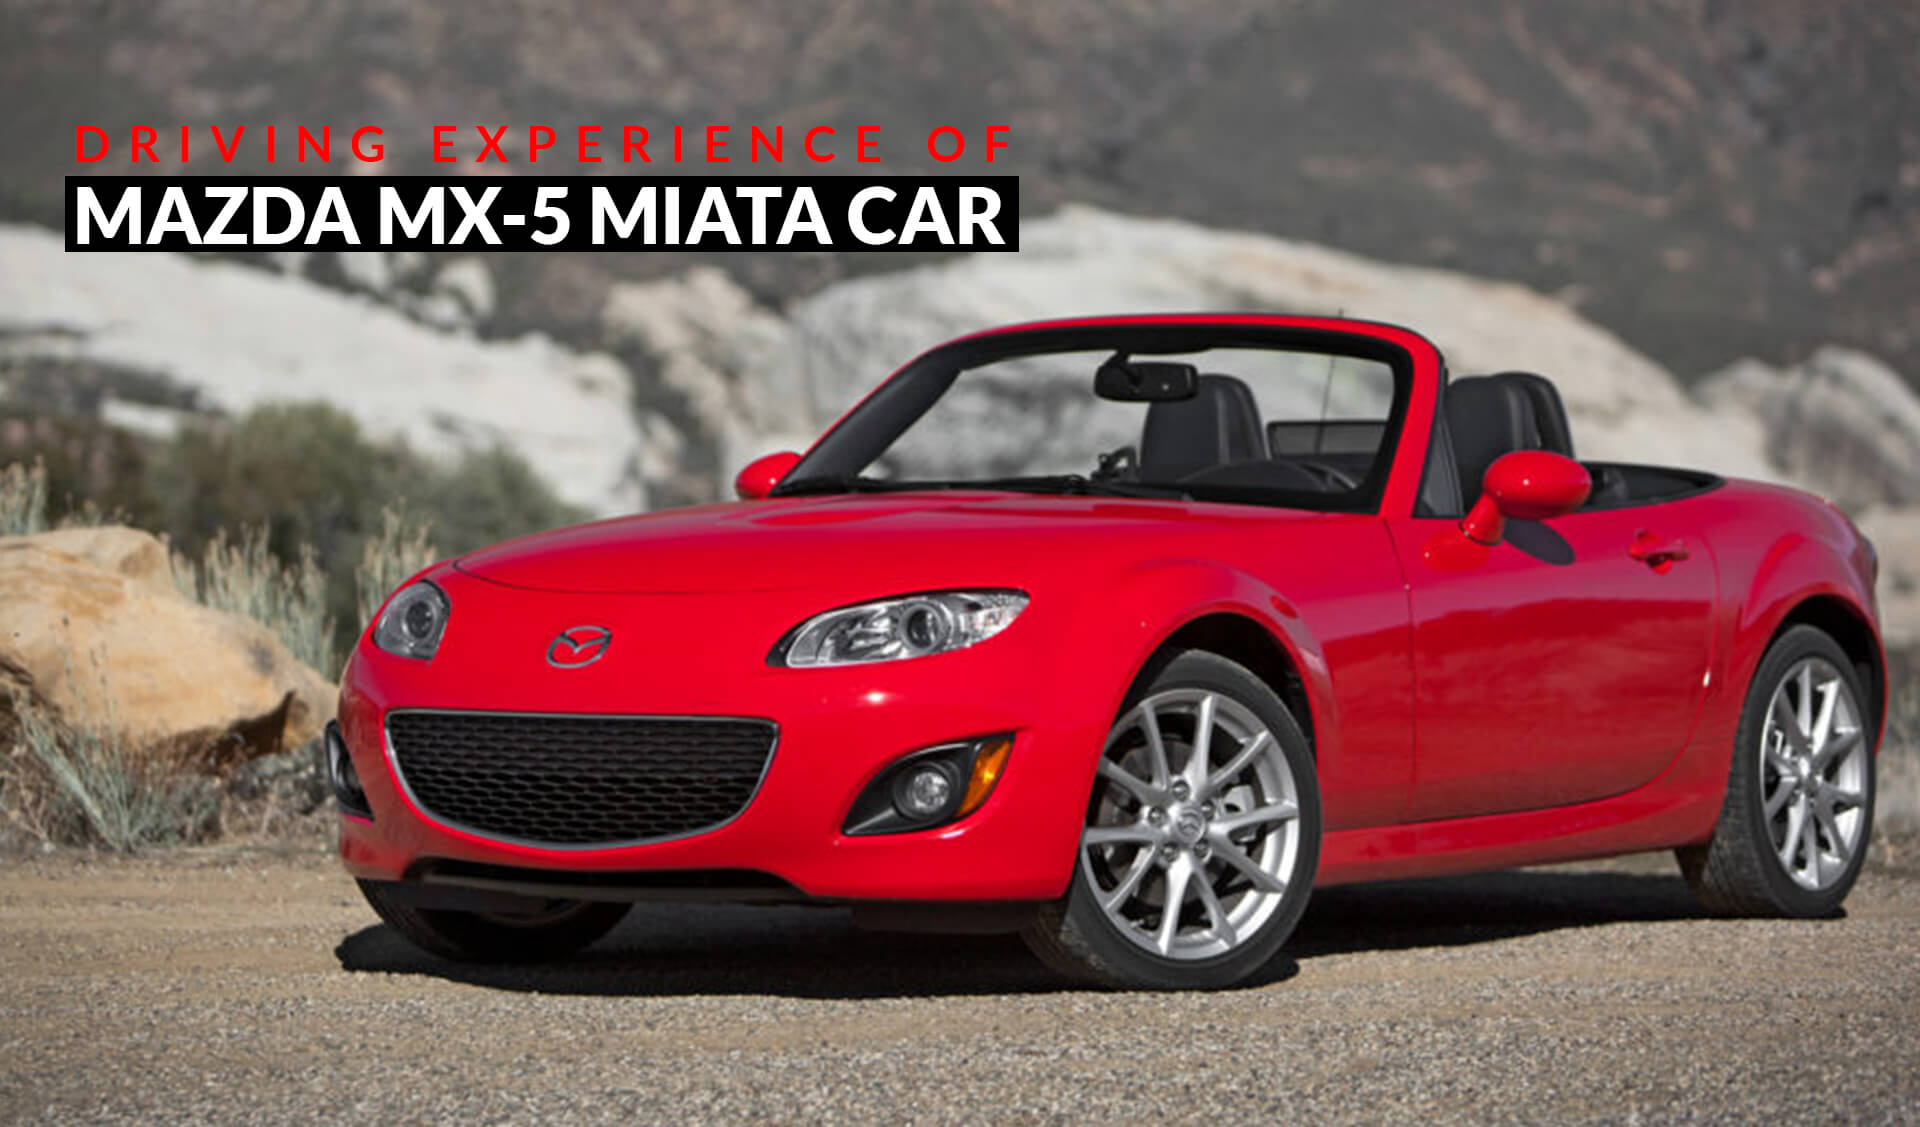 Driving Experience of Mazda MX-5 Miata Car